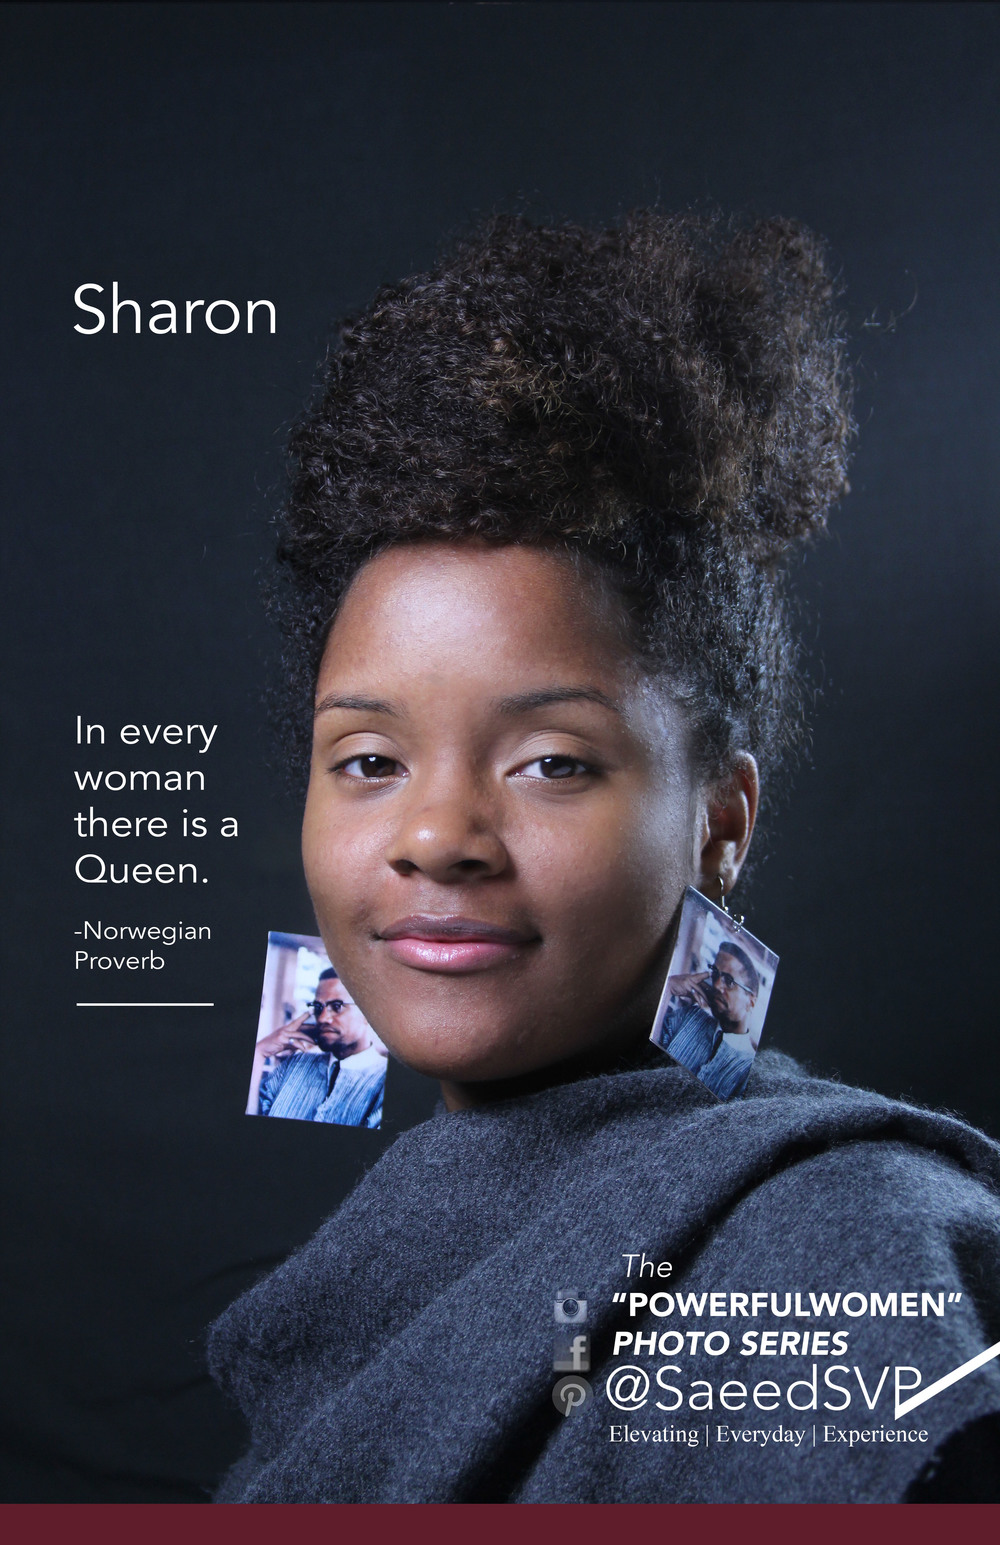 """What Queen's Do you know?    Join the conversation as we discover Powerful Women and acknowledge the ones we know.   The woman above   """"Sharon Bryant""""   has been acknowledged for her Queen like attributes.  Visit the official  """"Queen's Portrait Gallery""""   to see what she's doing to better humanity. Queen's are supreme by lineage and have the authority to address pressing issues.    Share this image with a woman you think is applying her authority to make the world a better place using the hashtag  #icTheQueeninU"""